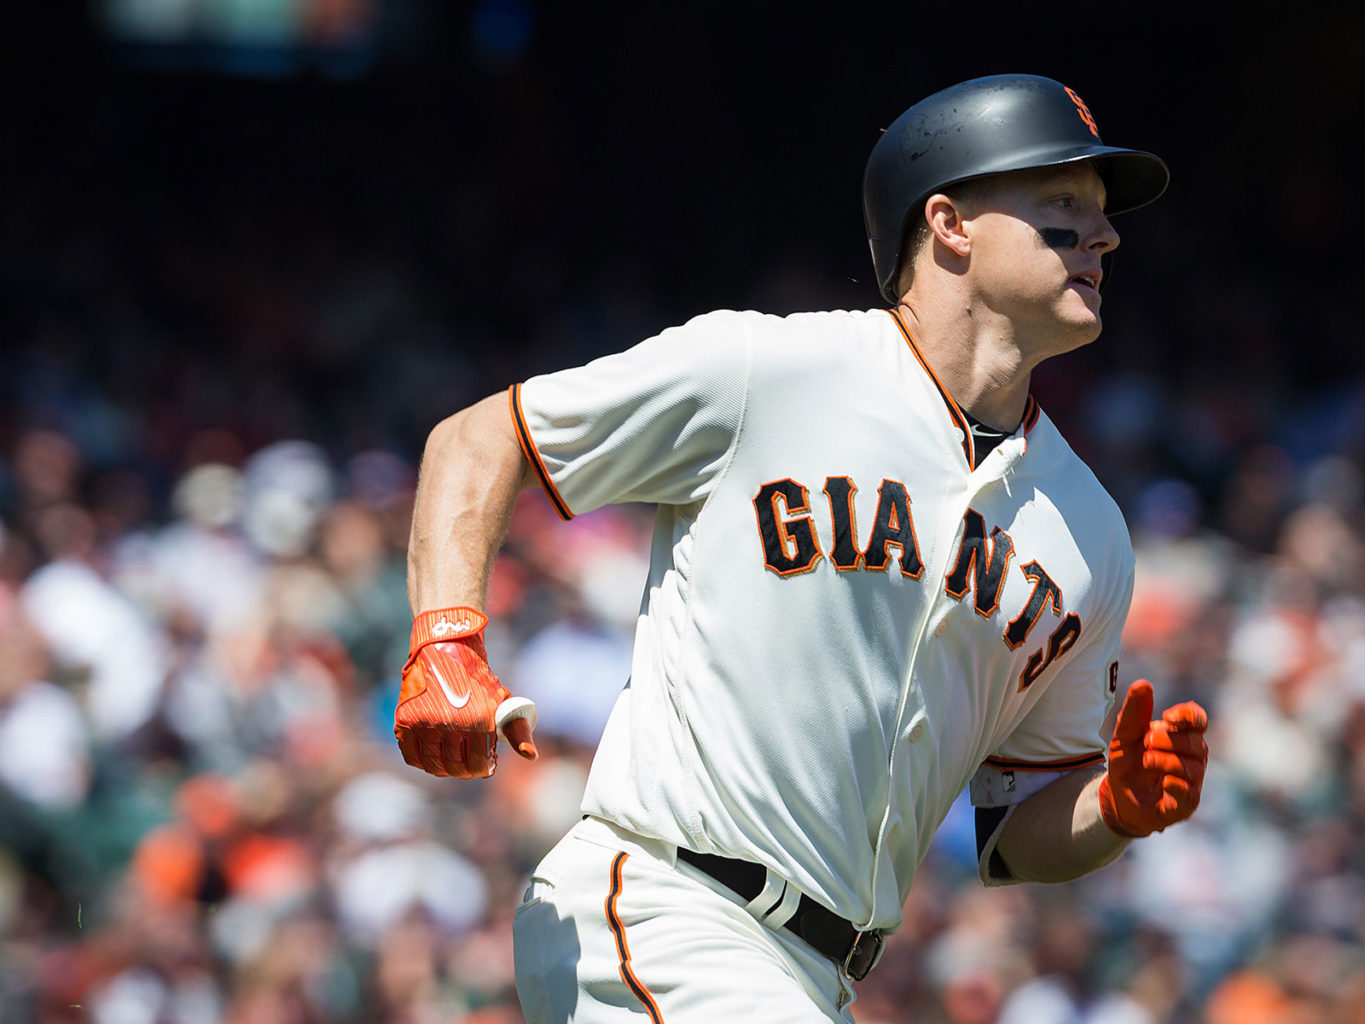 Nick Hundley notched four hits, including a home run, and three RBI in the Giants' 9-4 win over the San Diego Padres (Stan Olszewski/Special to S.F. Examiner)